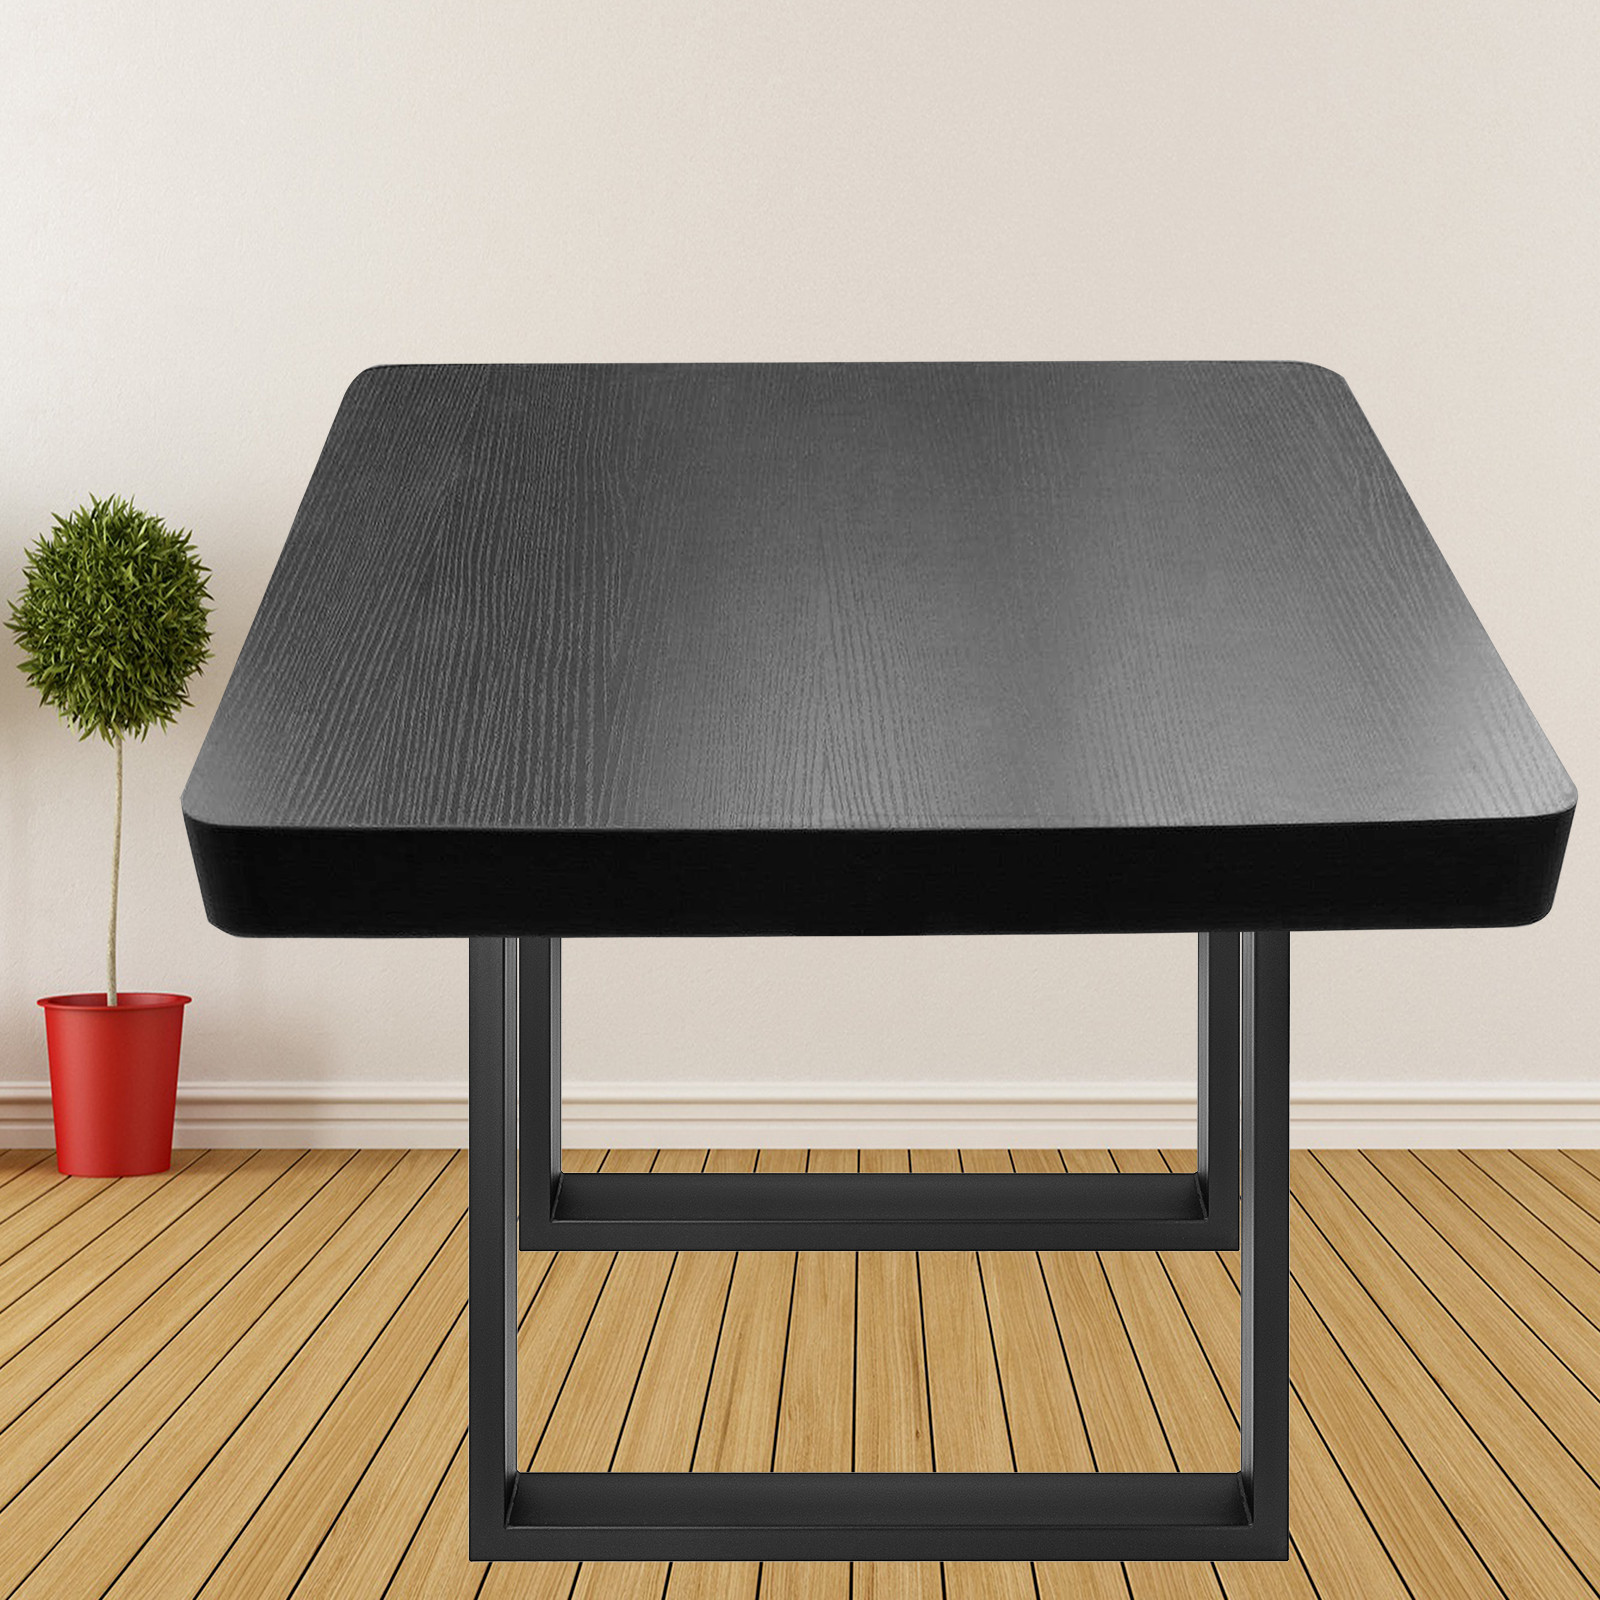 2X-Table-Legs-Black-Dining-Table-Leg-Heavy-Duty-Computer-Desk-Legs-Rectangle thumbnail 59